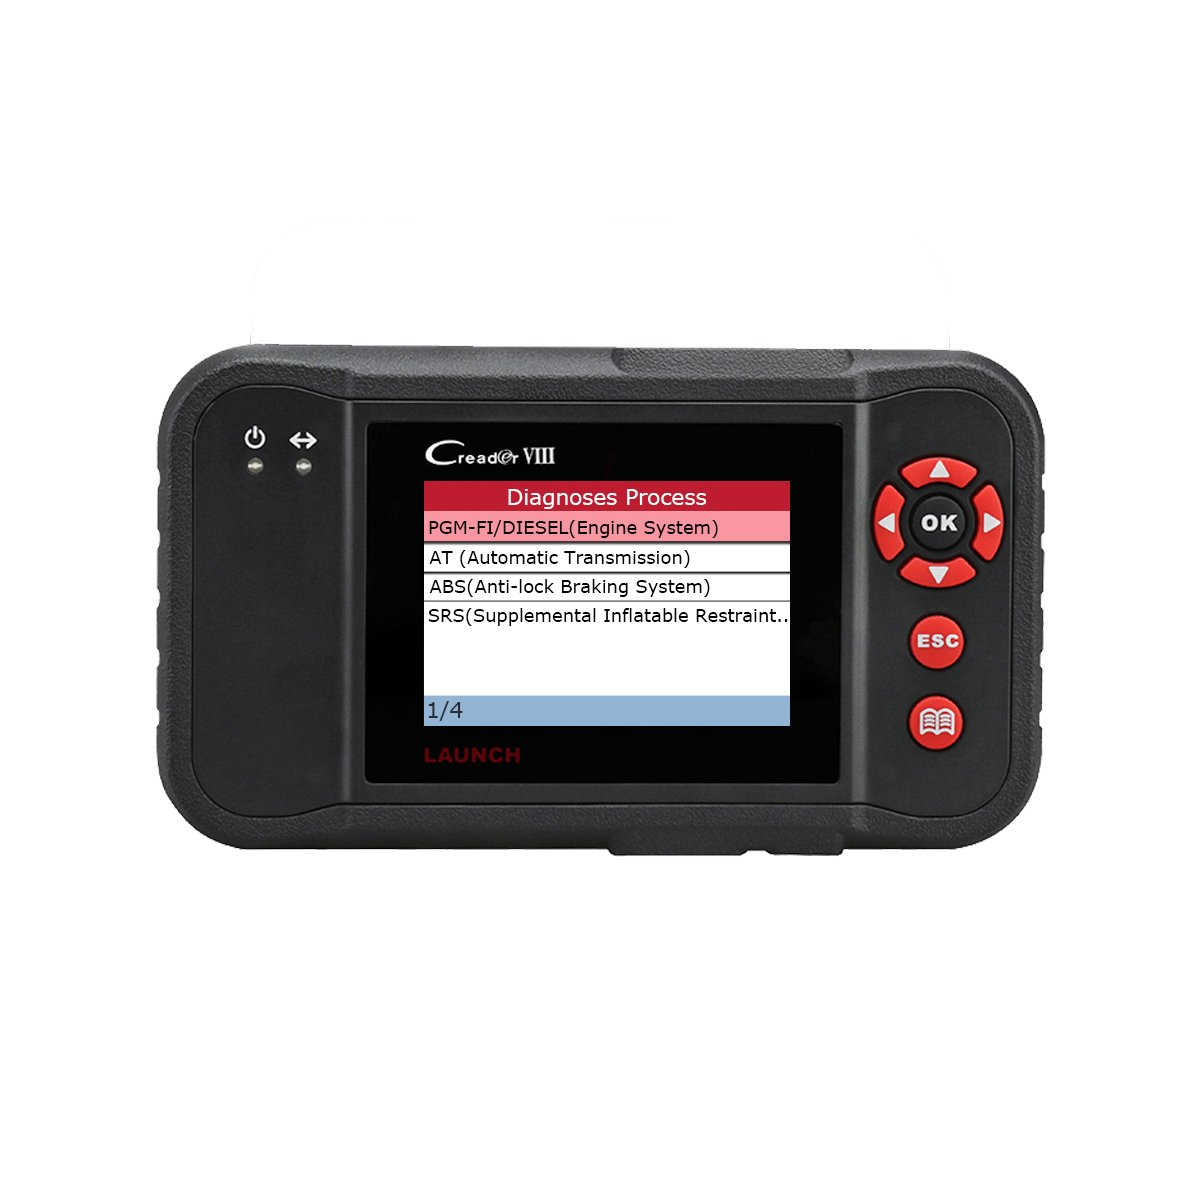 Launch Car Code Reader Creader VIII Professional Scan Tool, Including Full OBD2 Functions, Engine/Transmission/ABS/SRS Testing and SAS/EPB/Oil Reset for DIY Workshops Launch053